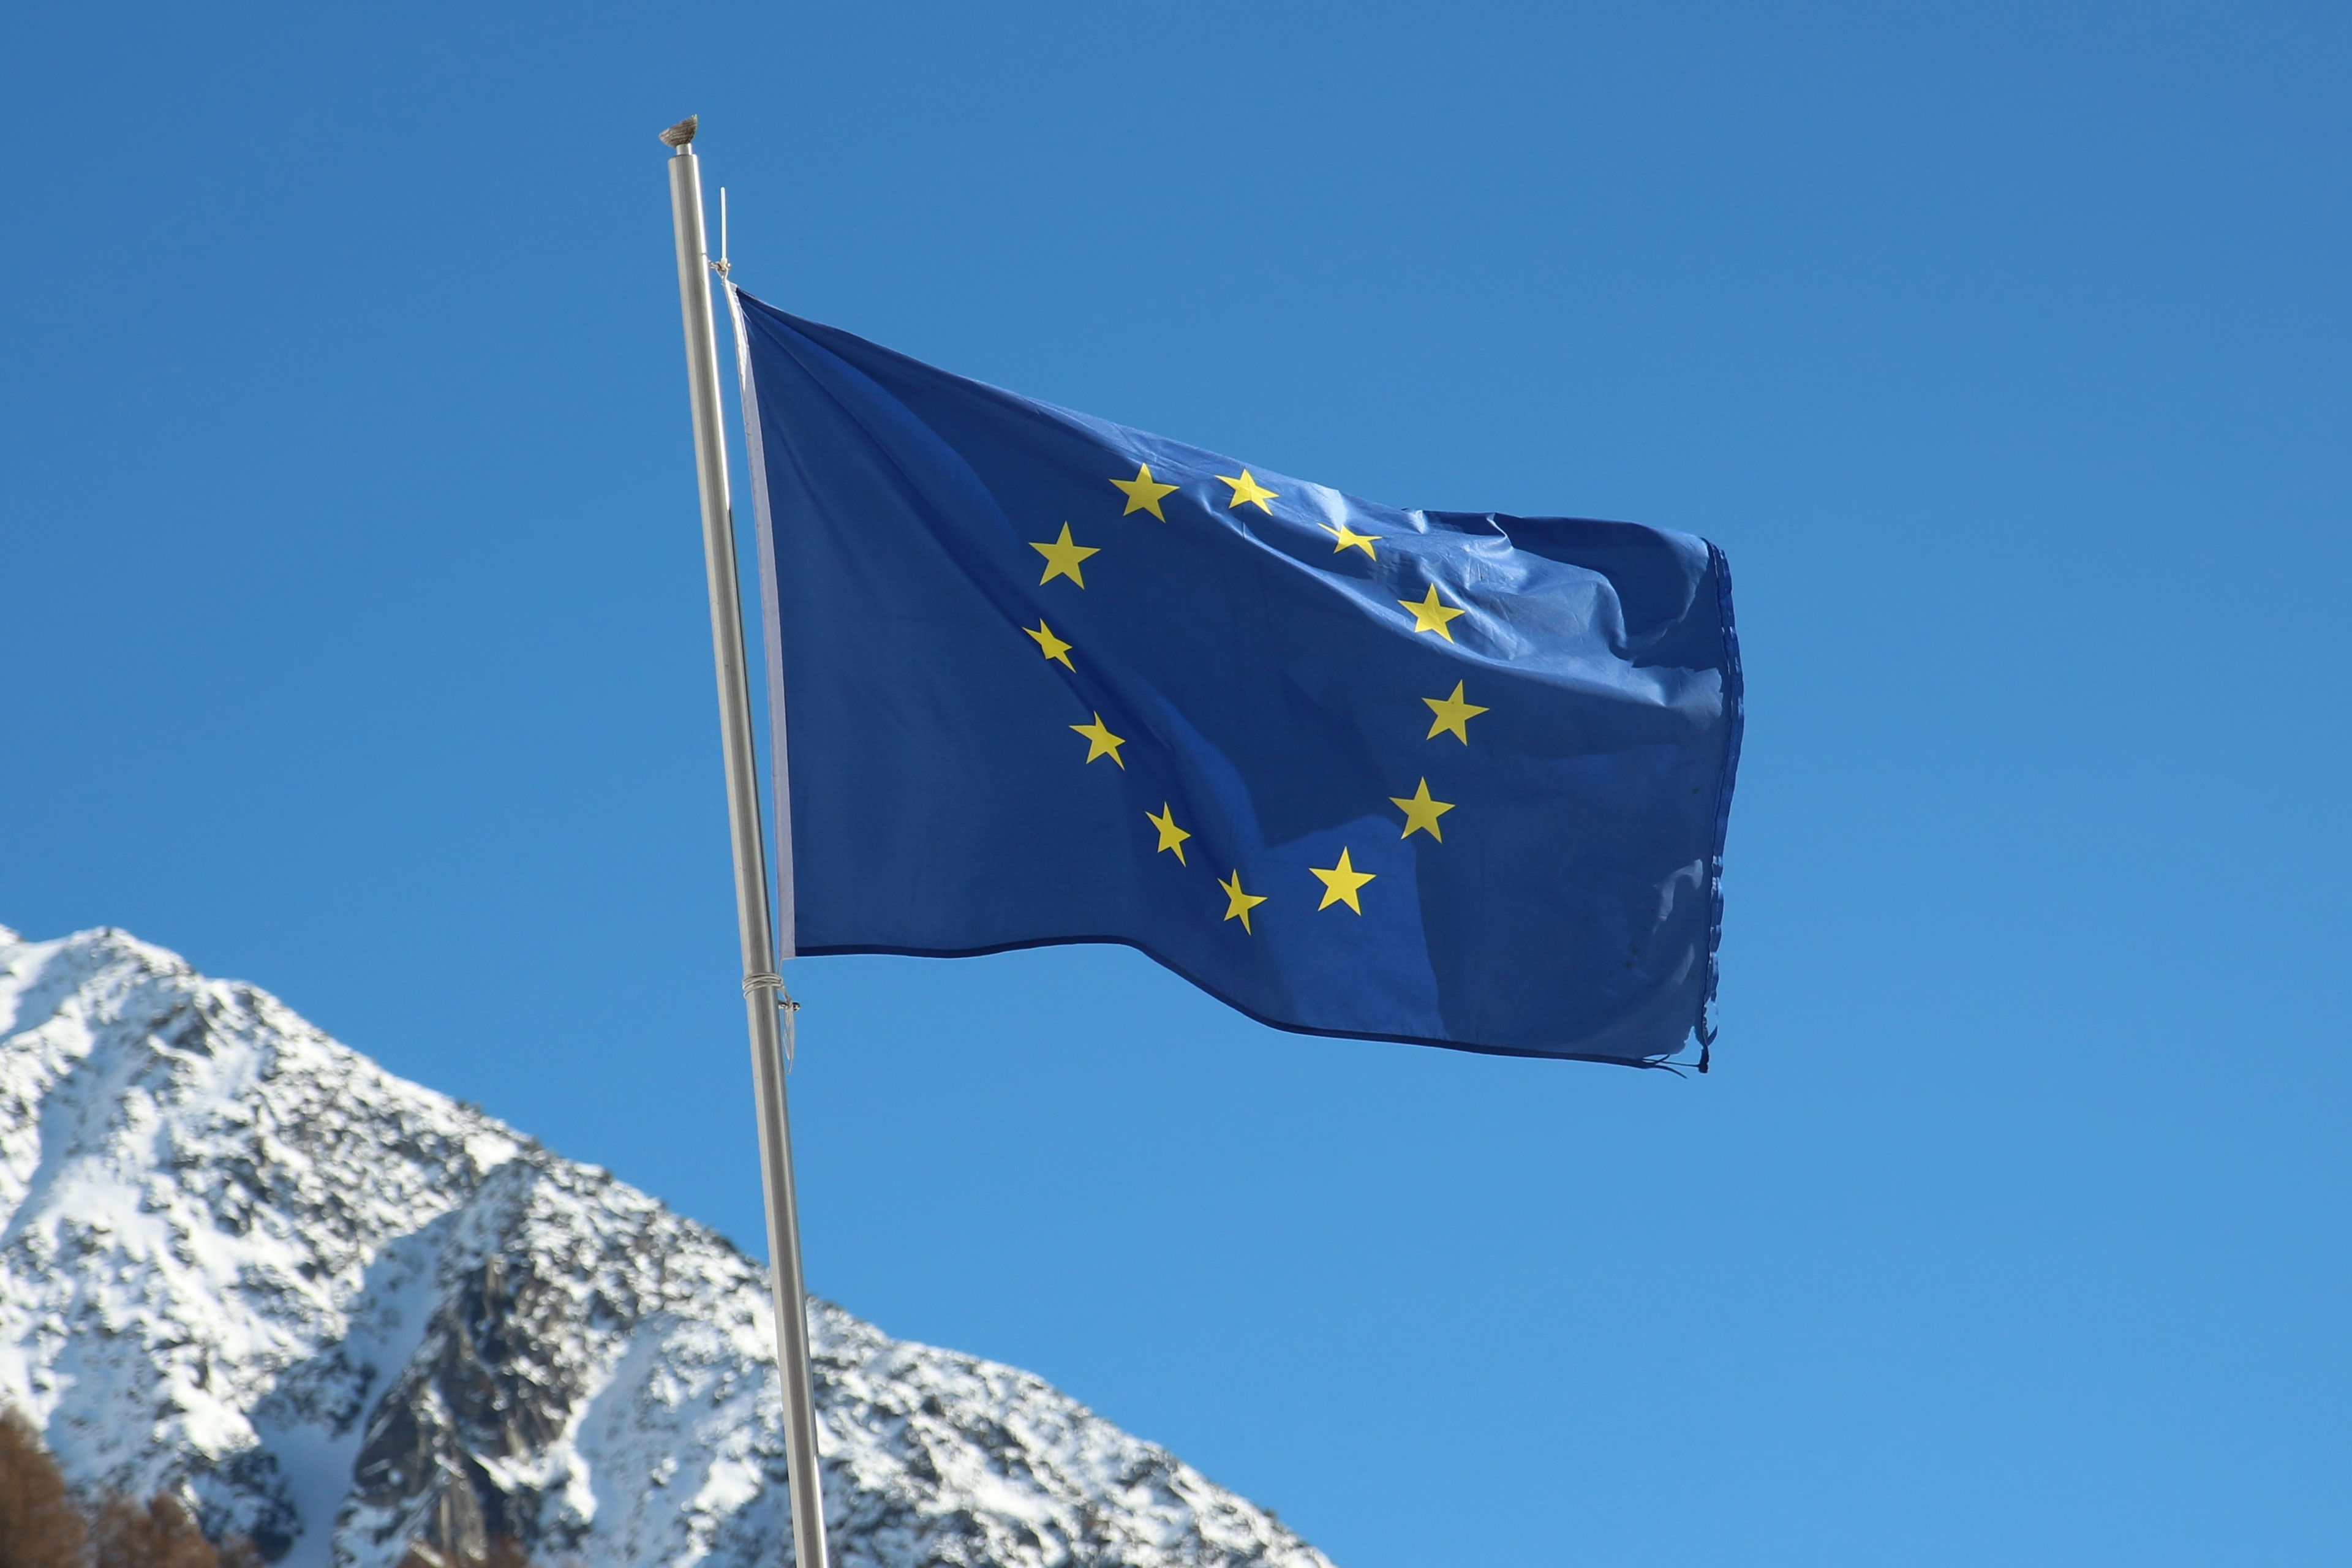 EU flag against snowy mountains